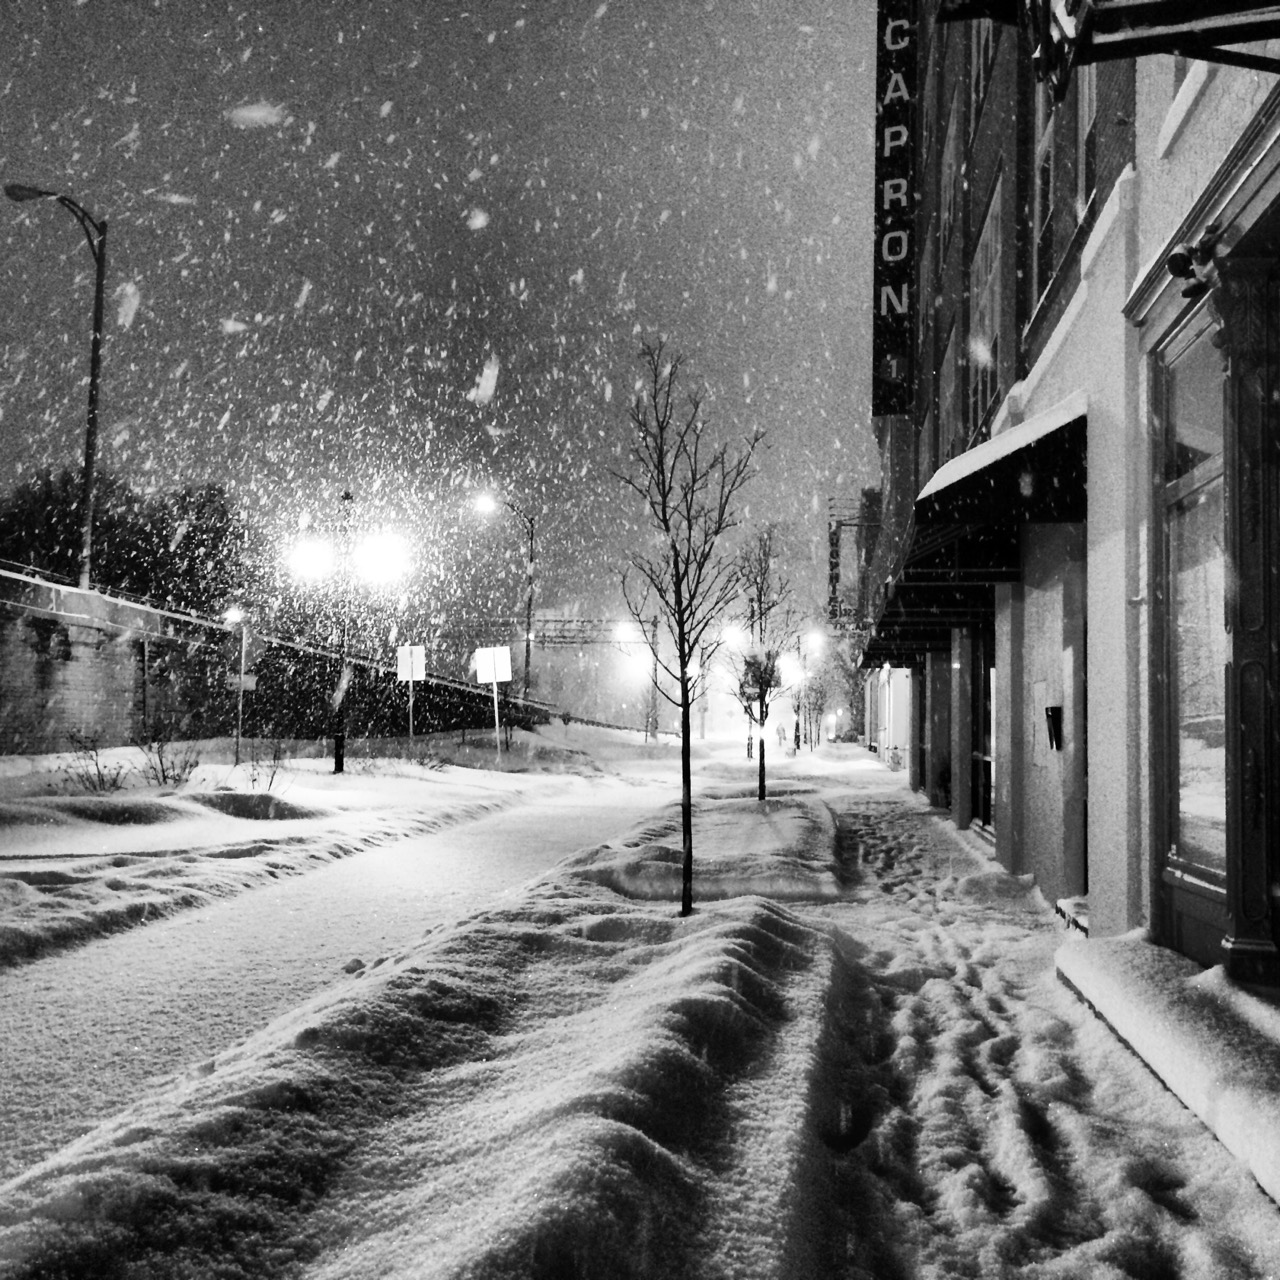 Places To Visit In Us During February: Enjoying Winter In The City Of Rochester